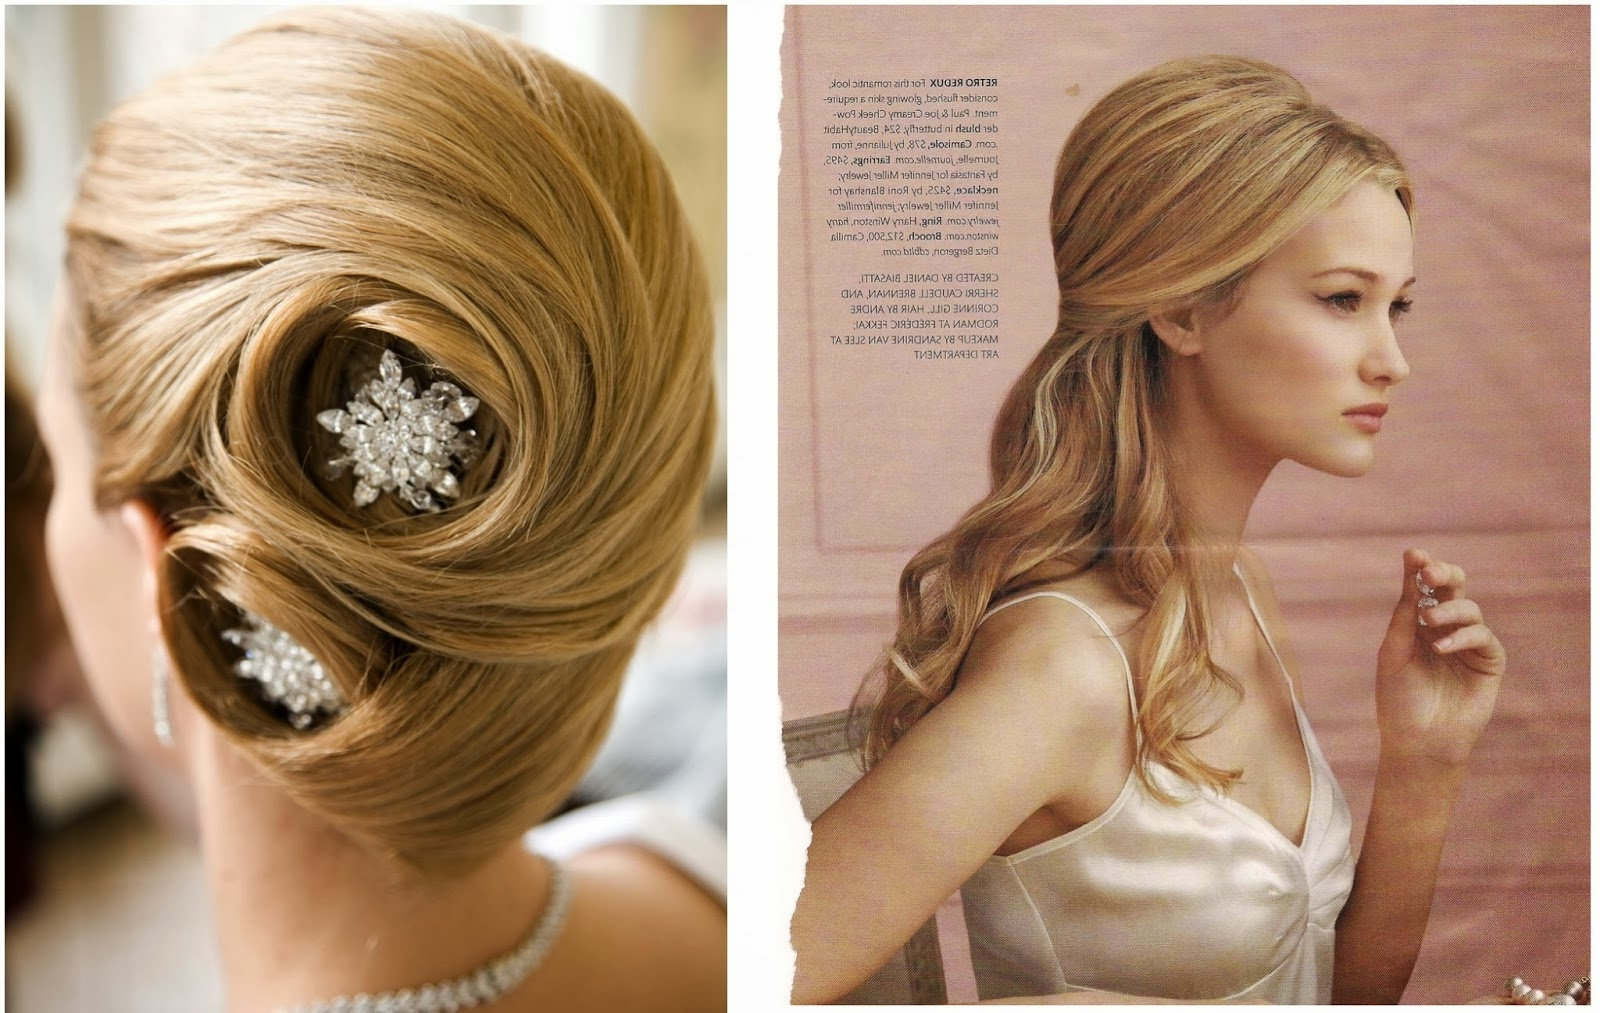 Recent Vintage Inspired Braided Updo Hairstyles Inside Beautiful Vintage Inspired Wedding Hairstyle Updo With Braid (View 16 of 20)